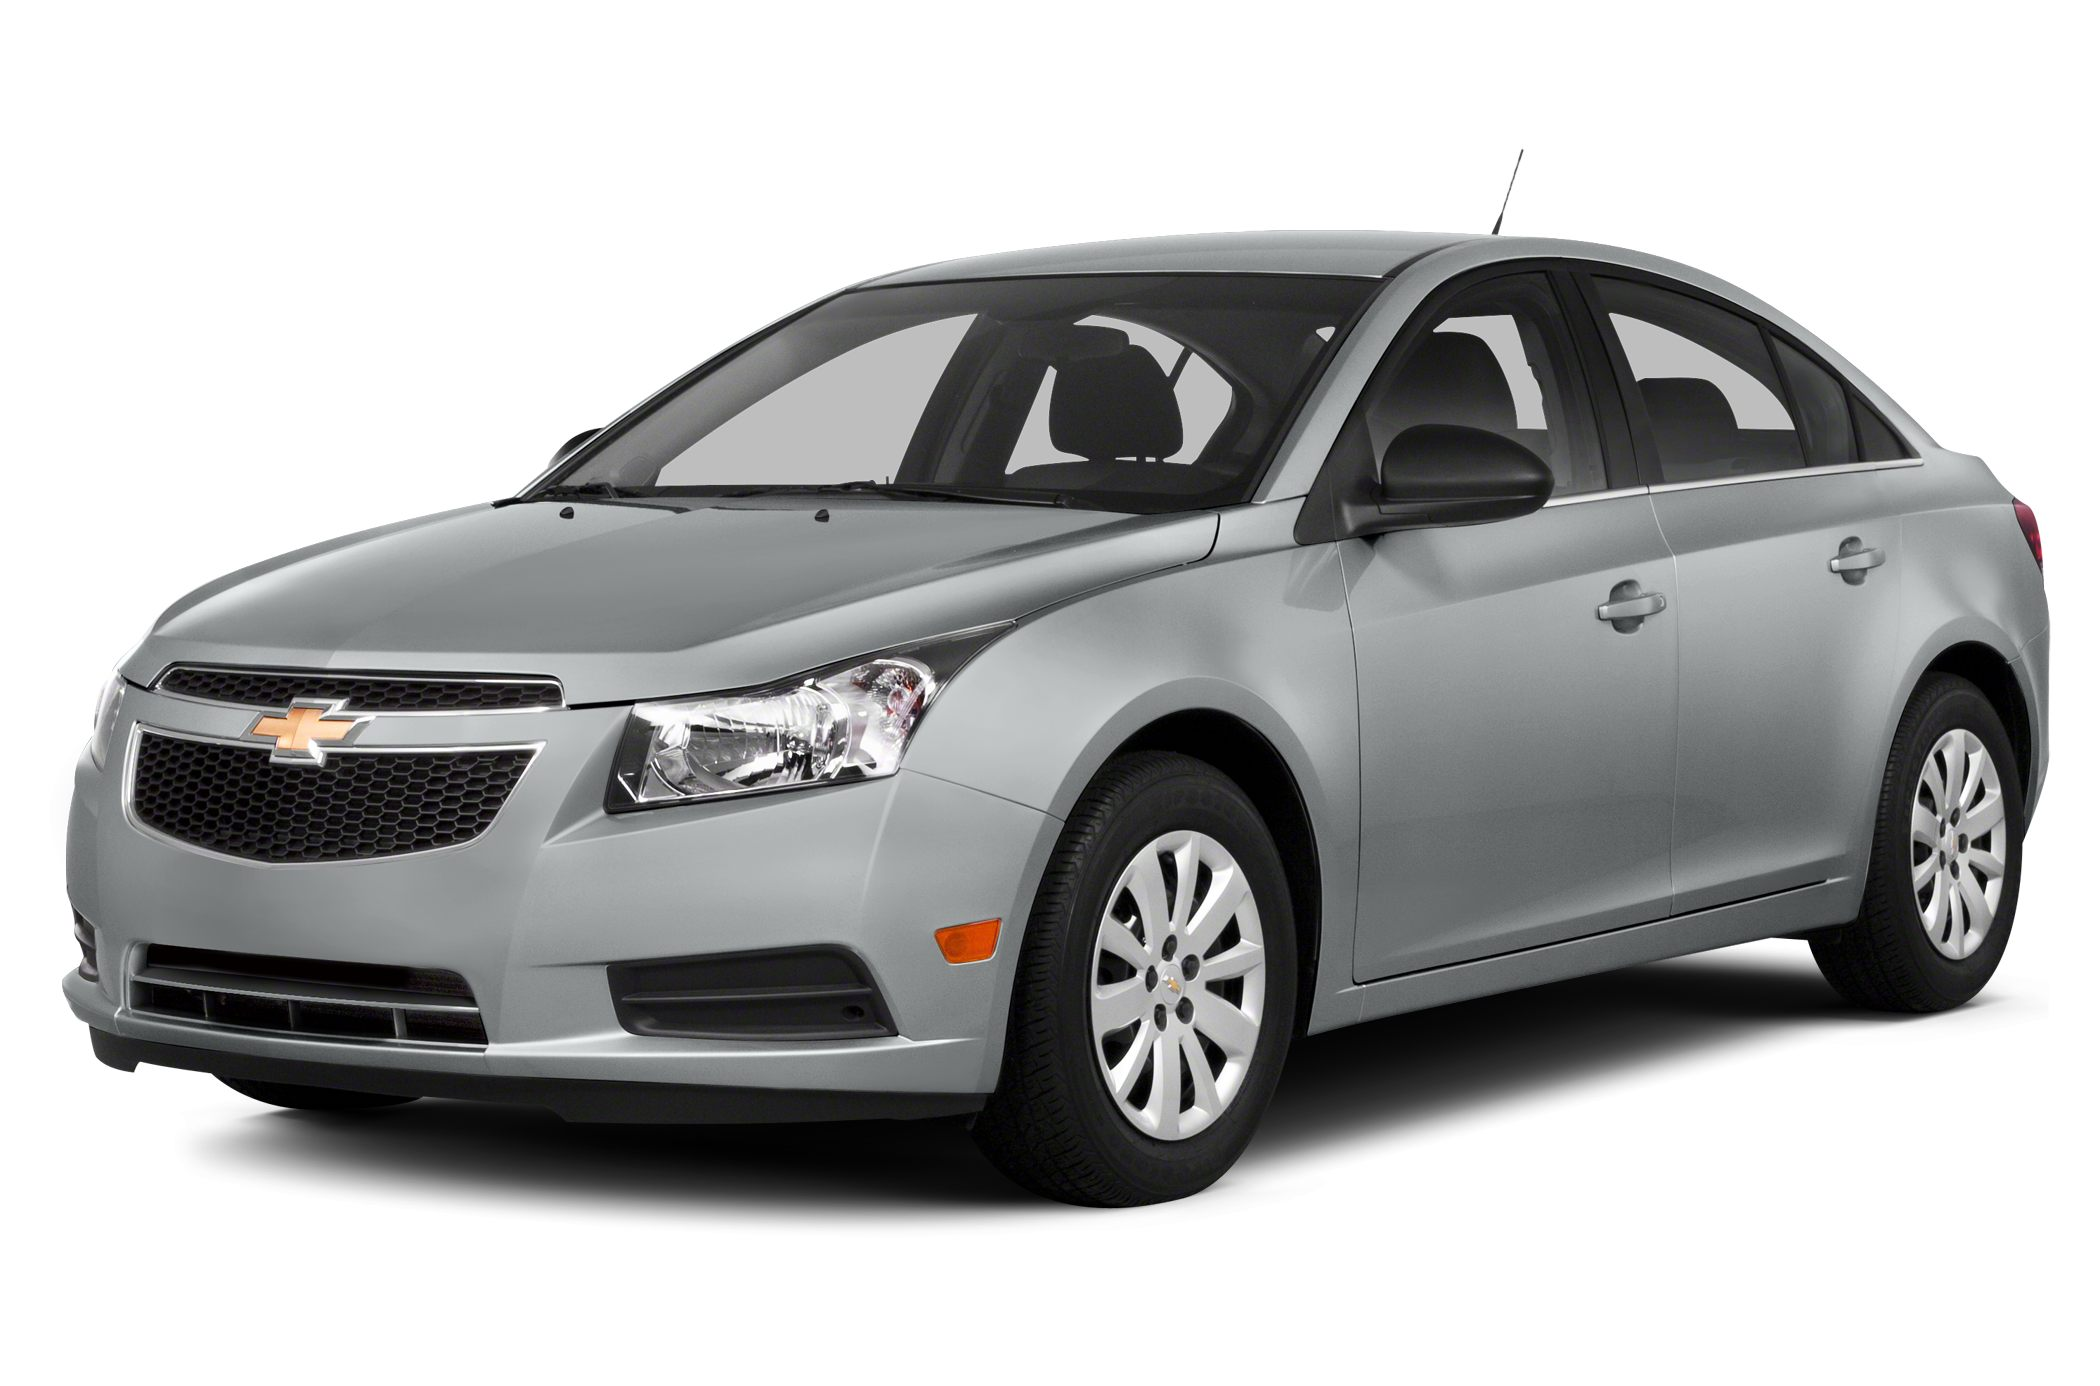 2014 Chevrolet Cruze 1LT Sedan for sale in Las Cruces for $20,589 with 17,746 miles.